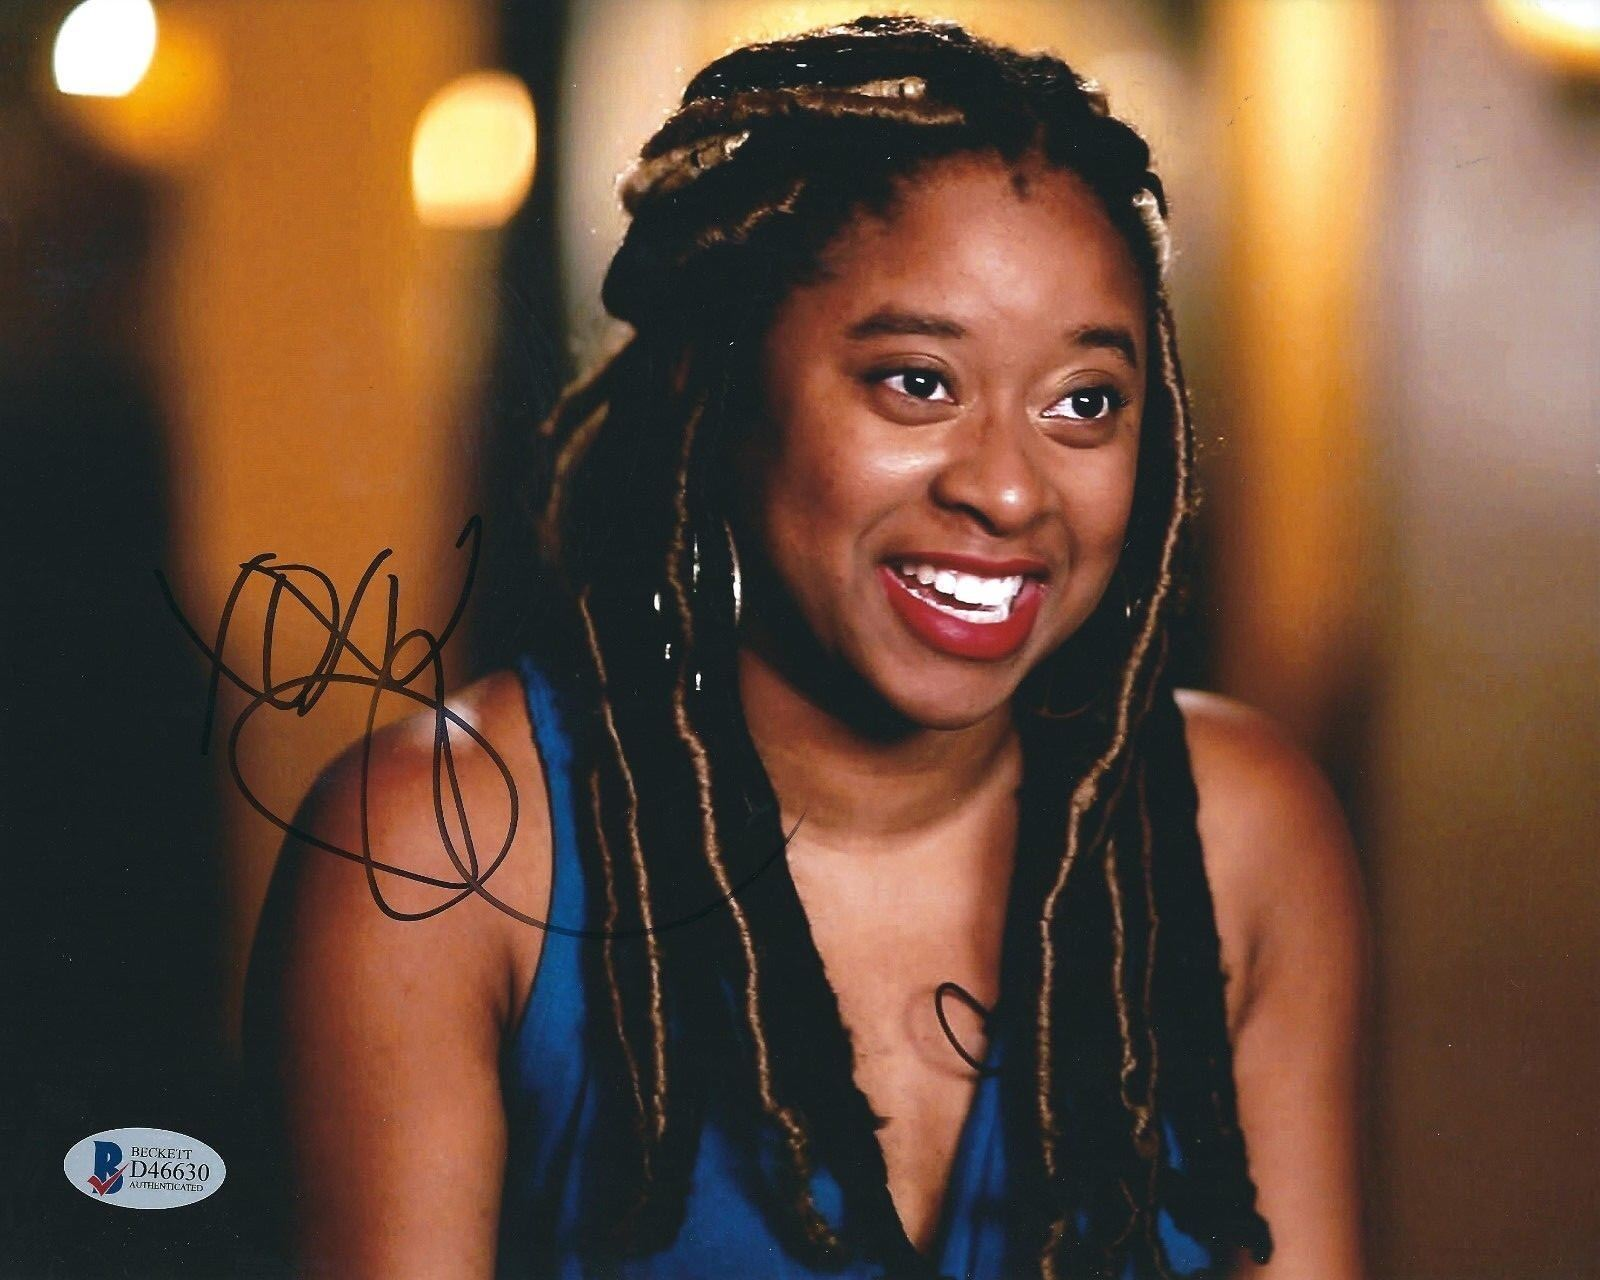 Phoebe Robinson Signed 8x10 Photo *2 Dope Queens *Actress BAS D46630